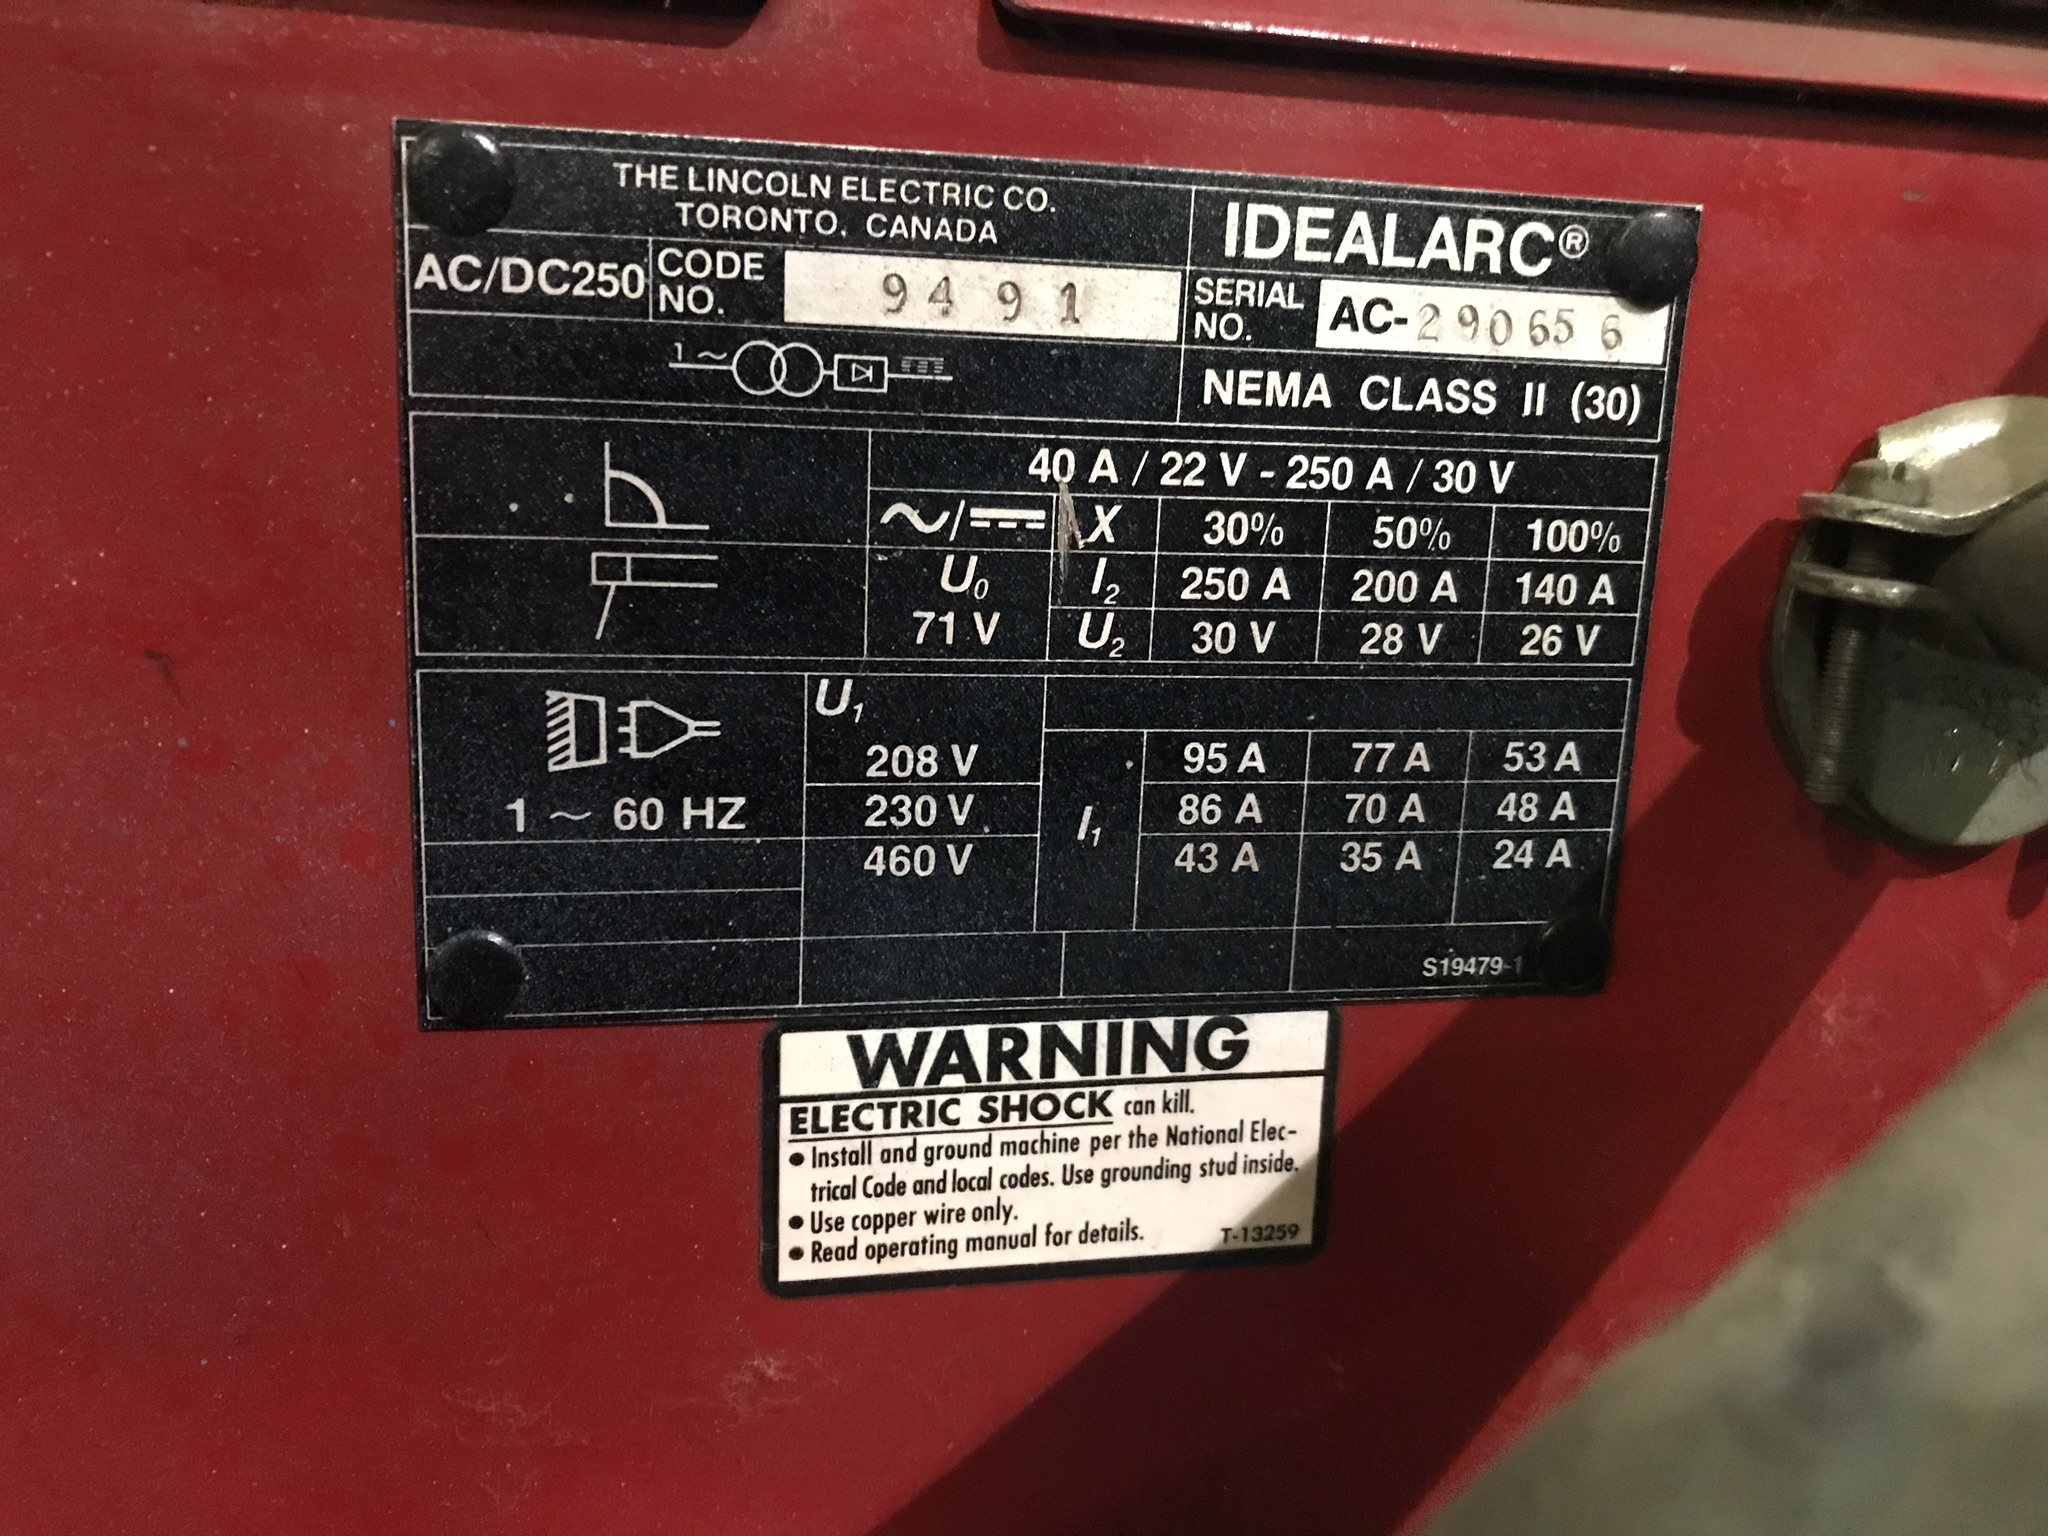 Lincoln Ideal Arc 250, 250 Amp Capacity, CC, AC/DC, Arc Welder - Image 2 of 2